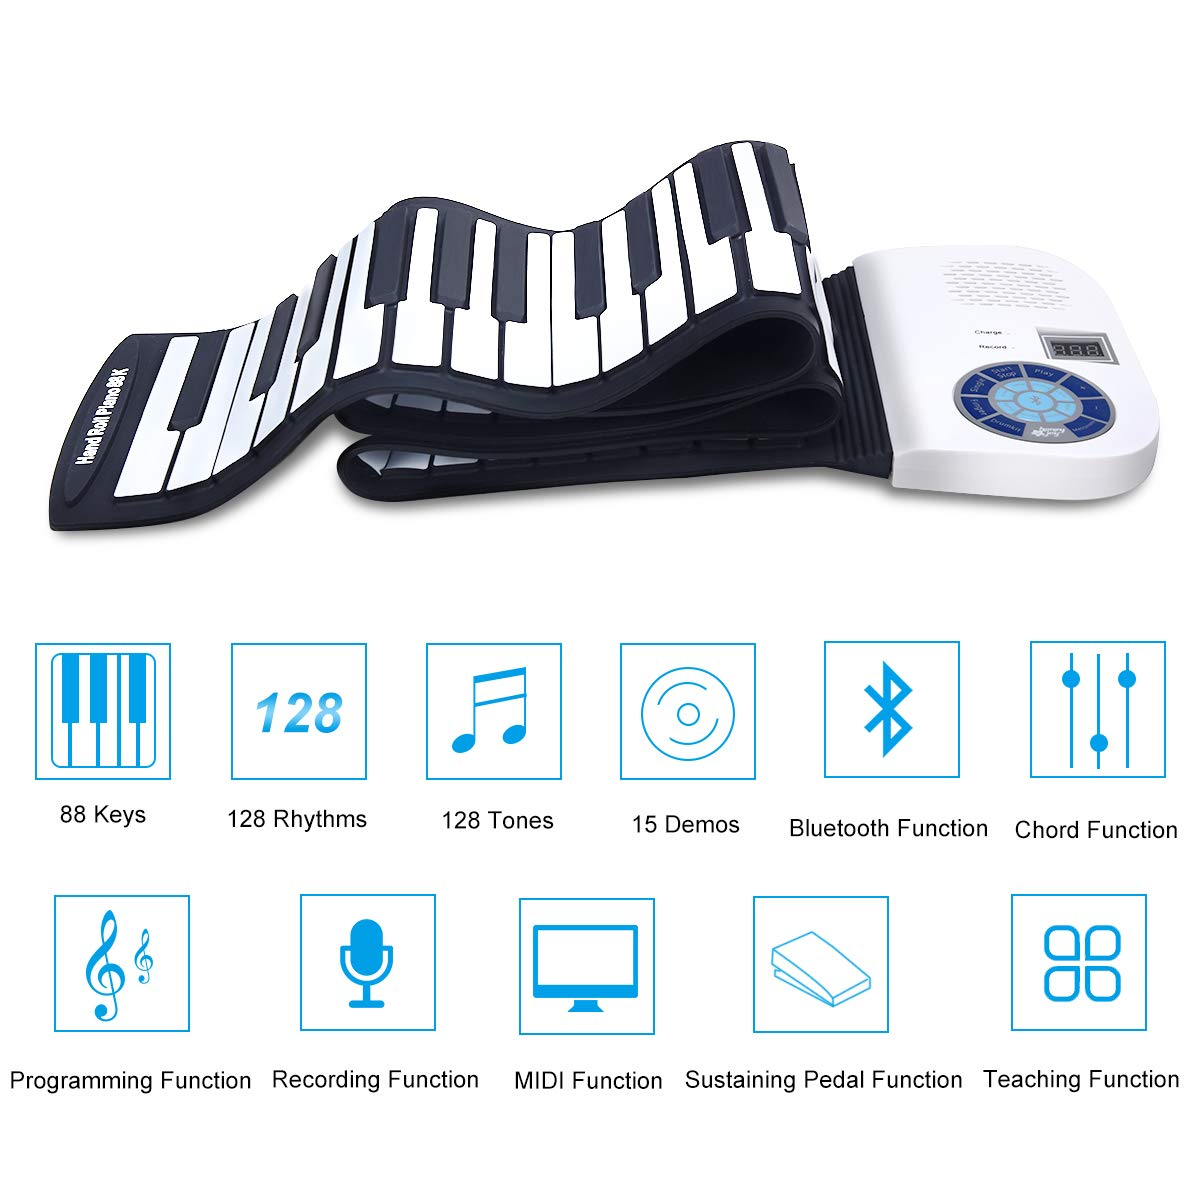 BABY JOY Roll Up Piano, Upgraded Electronic Piano Keyboard, Portable Piano w/Bluetooth, MP3 Headphone USB Input, MIDI OUT, 128 Rhythms, Record, Play, Volume Control (White, 88Keys) by BABY JOY (Image #4)